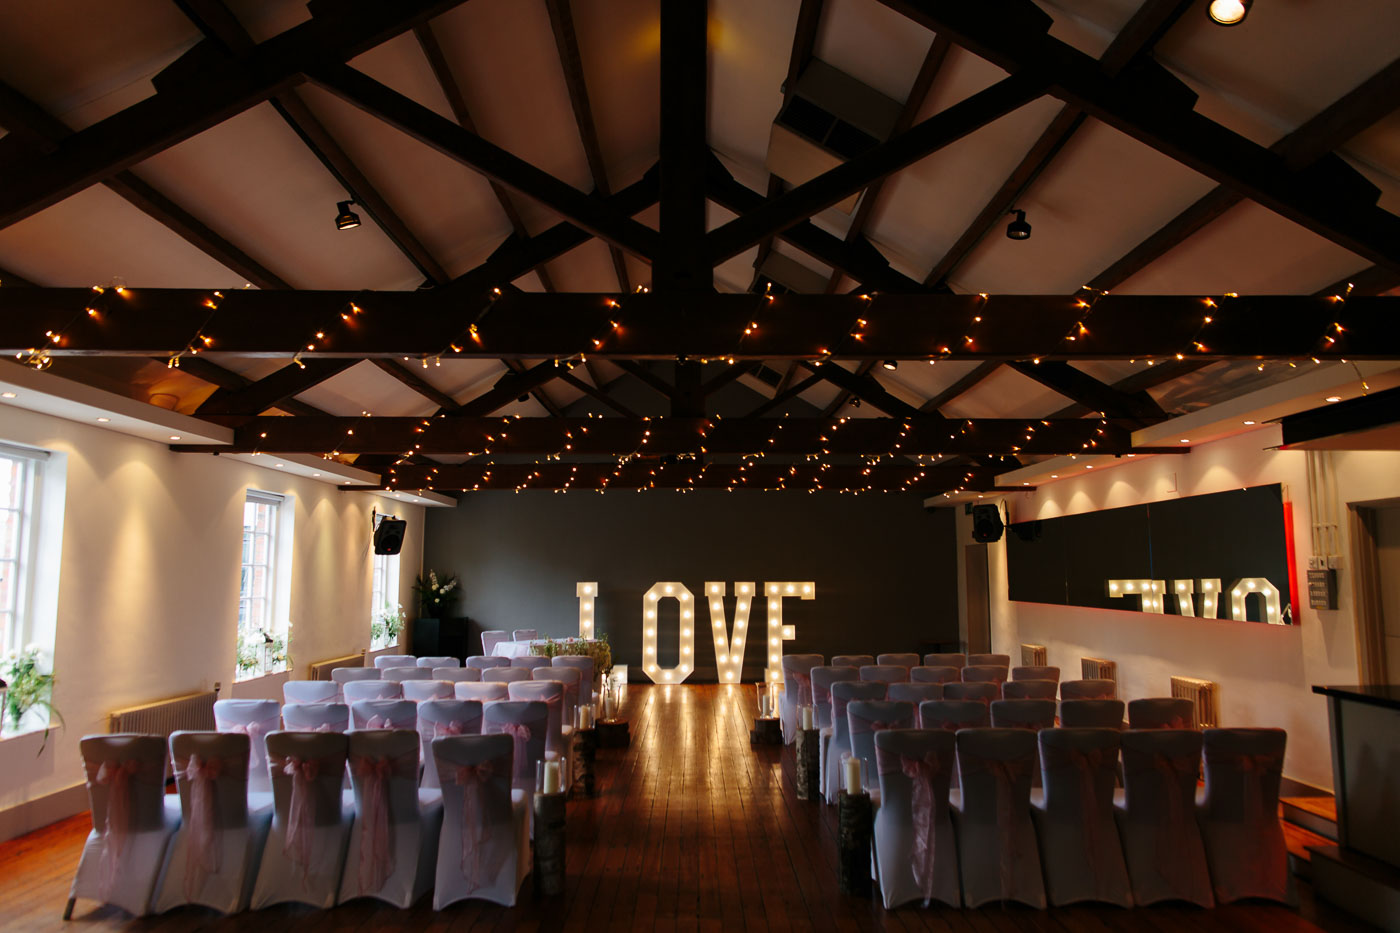 the castlefield rooms ceremony room wit love letters and rustic oak beams covered in fairy lights